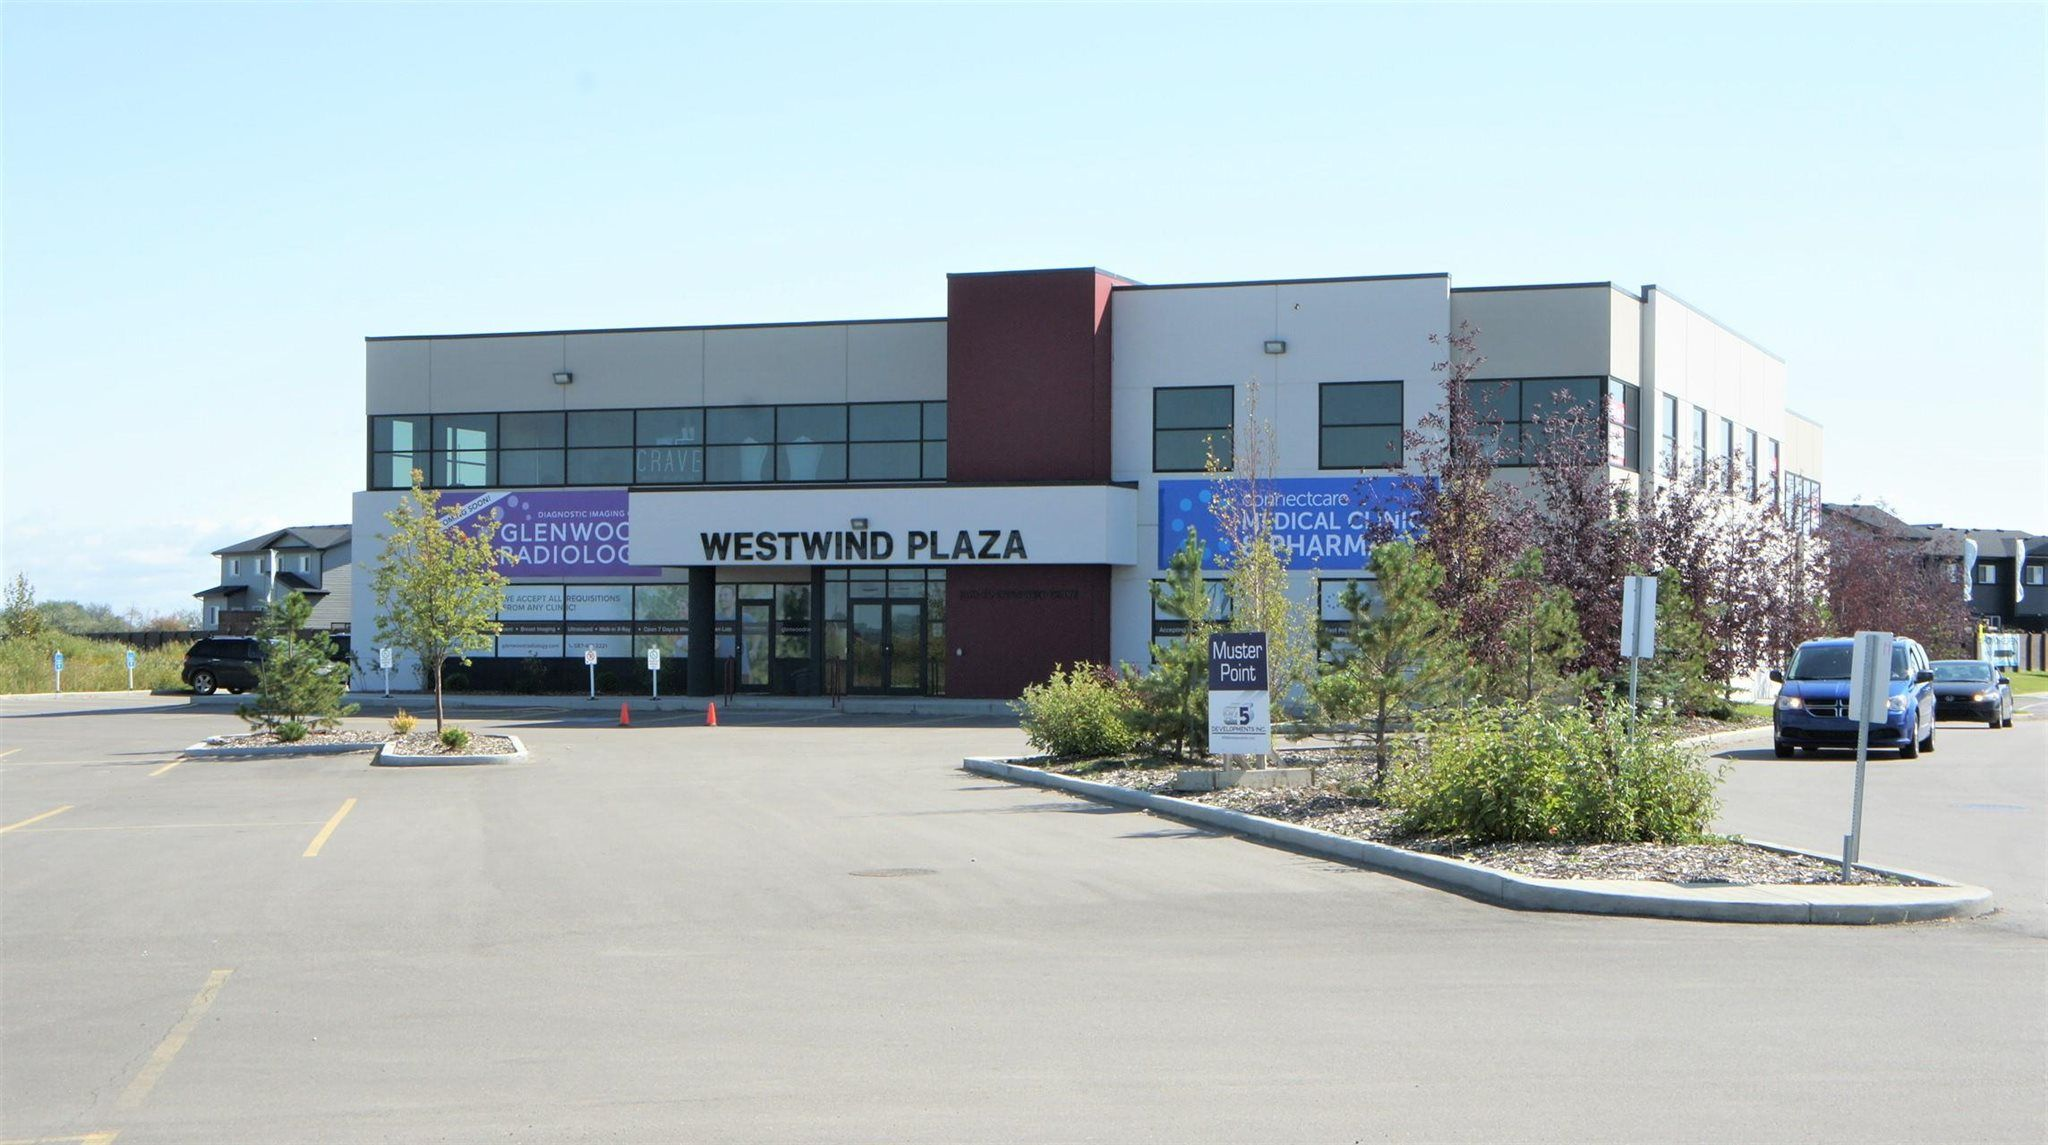 Main Photo: 226 20 WESTWIND Drive: Spruce Grove Office for sale or lease : MLS®# E4252565